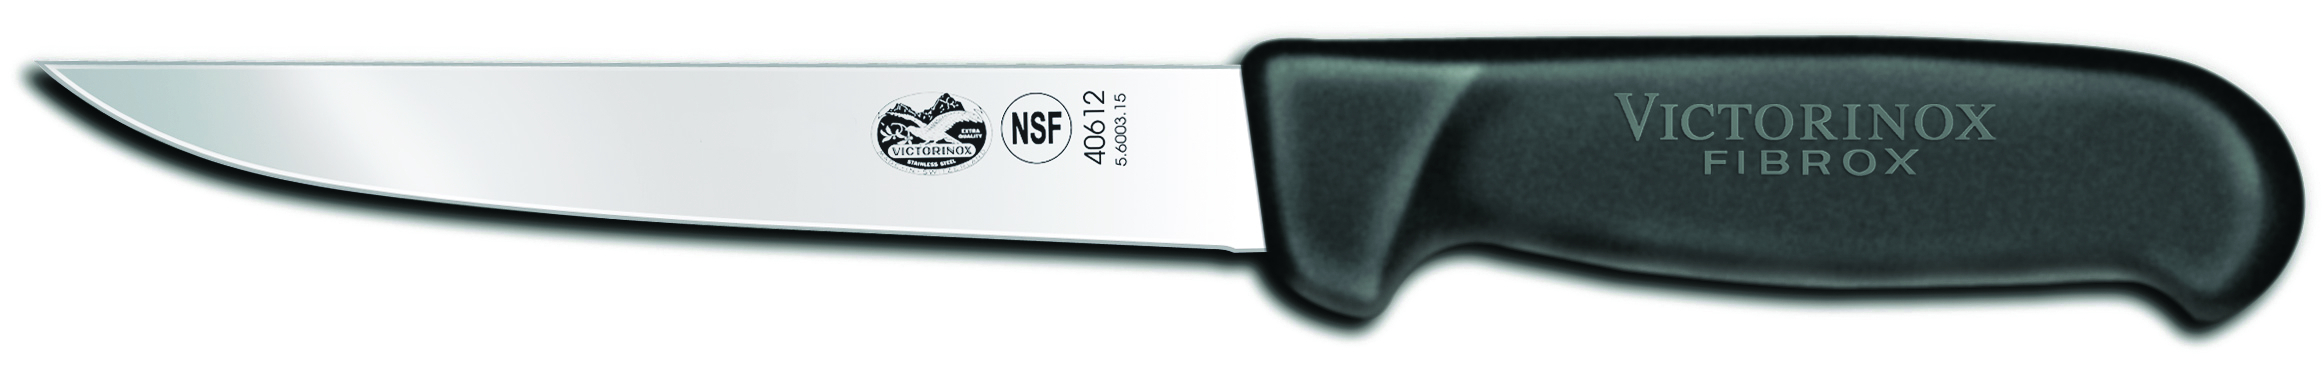 Victorinox Forschner Straight Extra Wide Stiff Bladed Stainless Steel Boning Knife with Black Fibrox Handle, 6 Inch